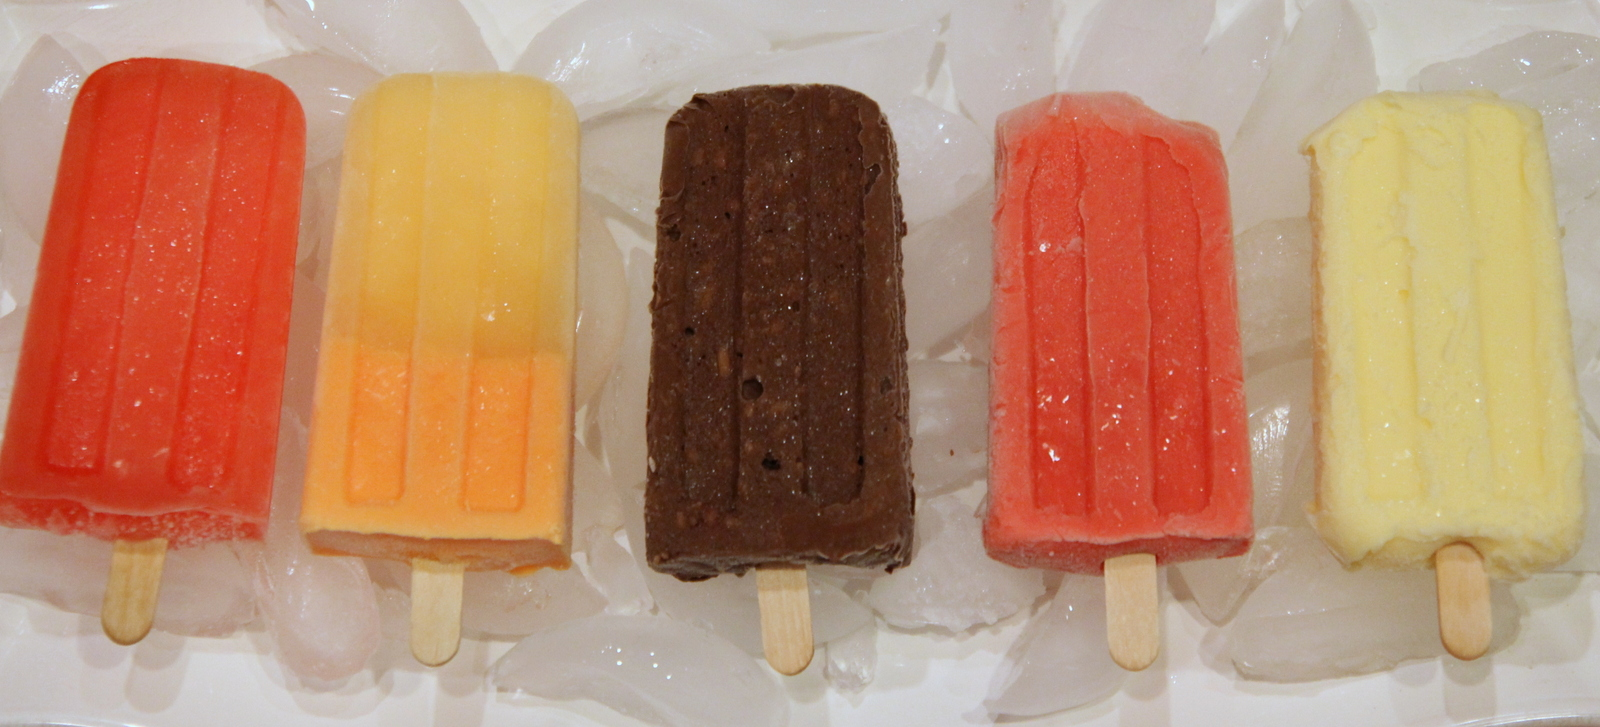 Homemade Popsicles – 3 easy and delicious recipes!